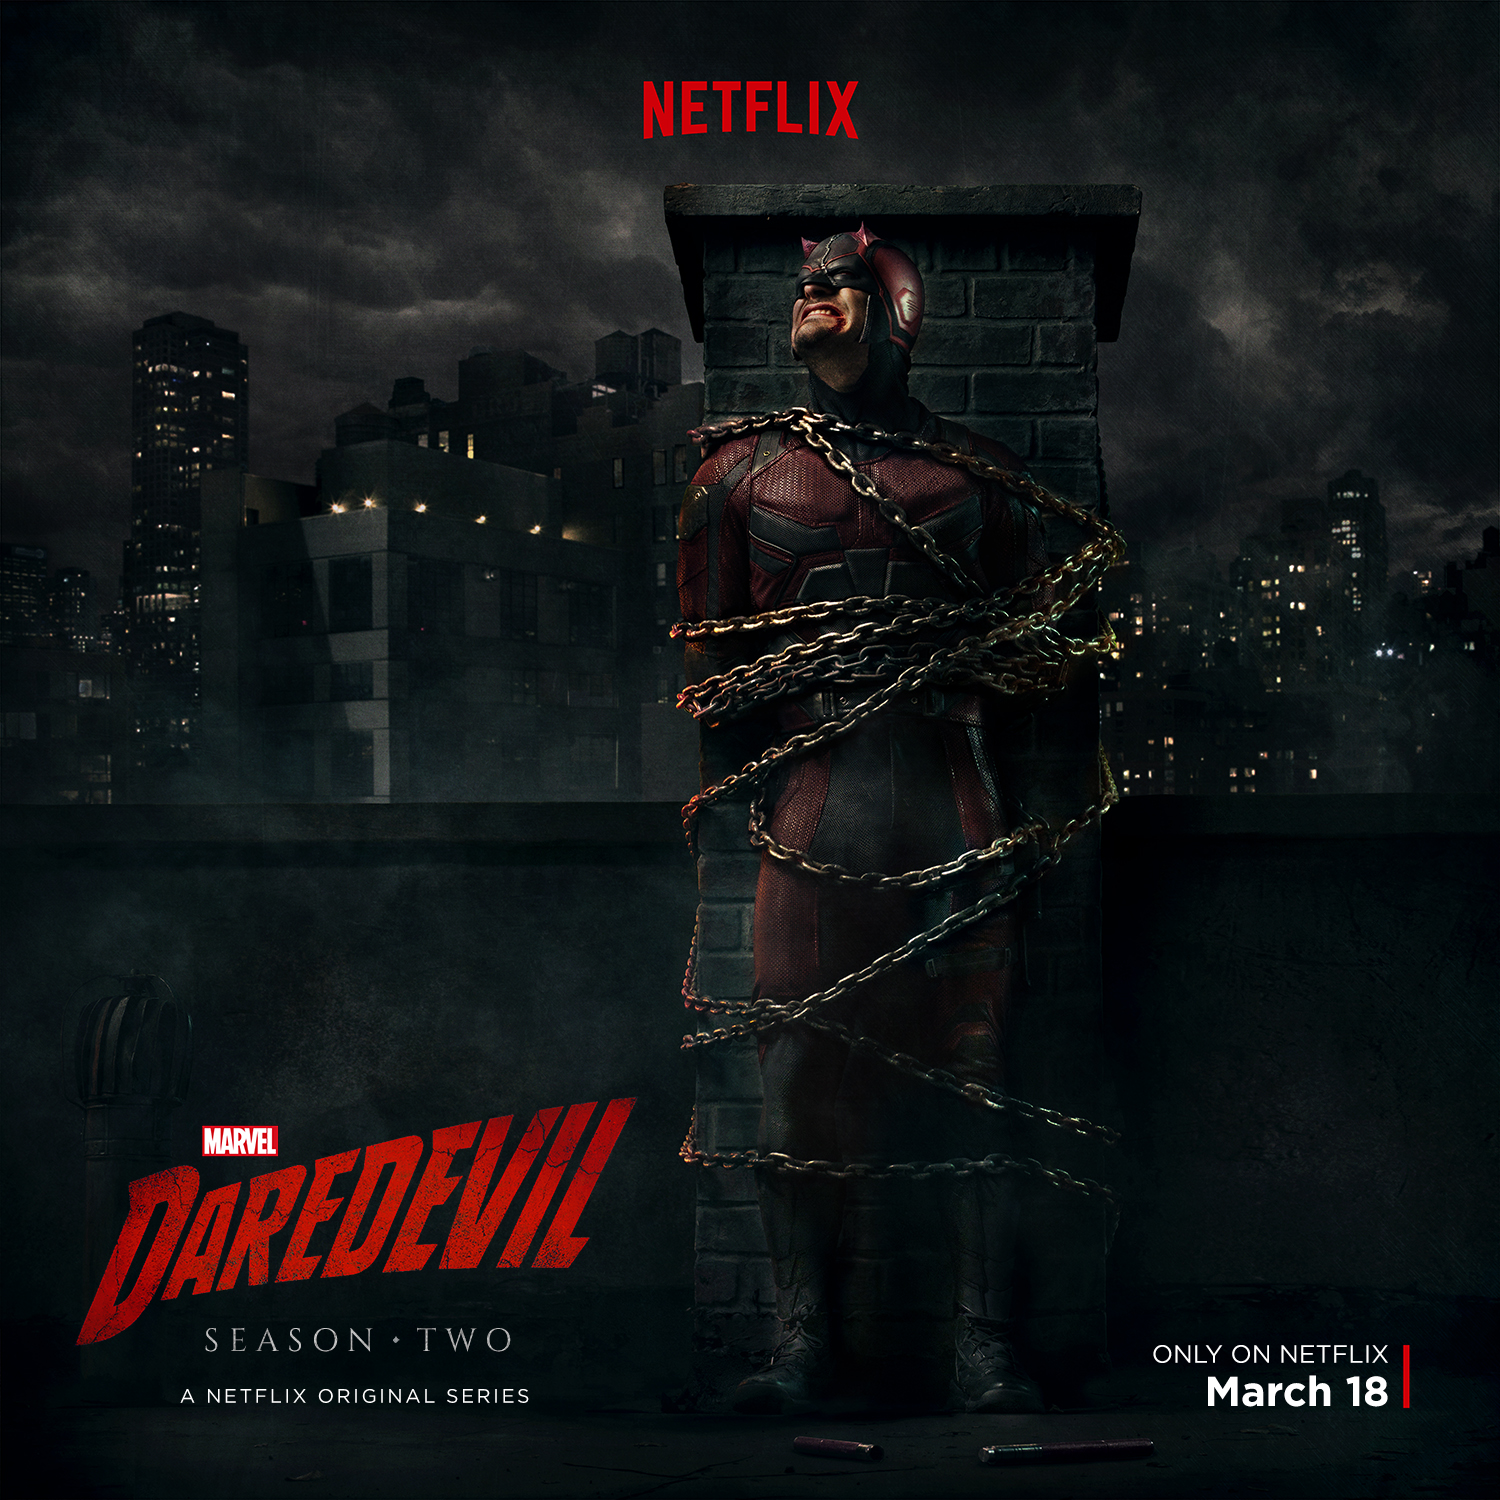 Daredevil - Season 2 - Poster 2